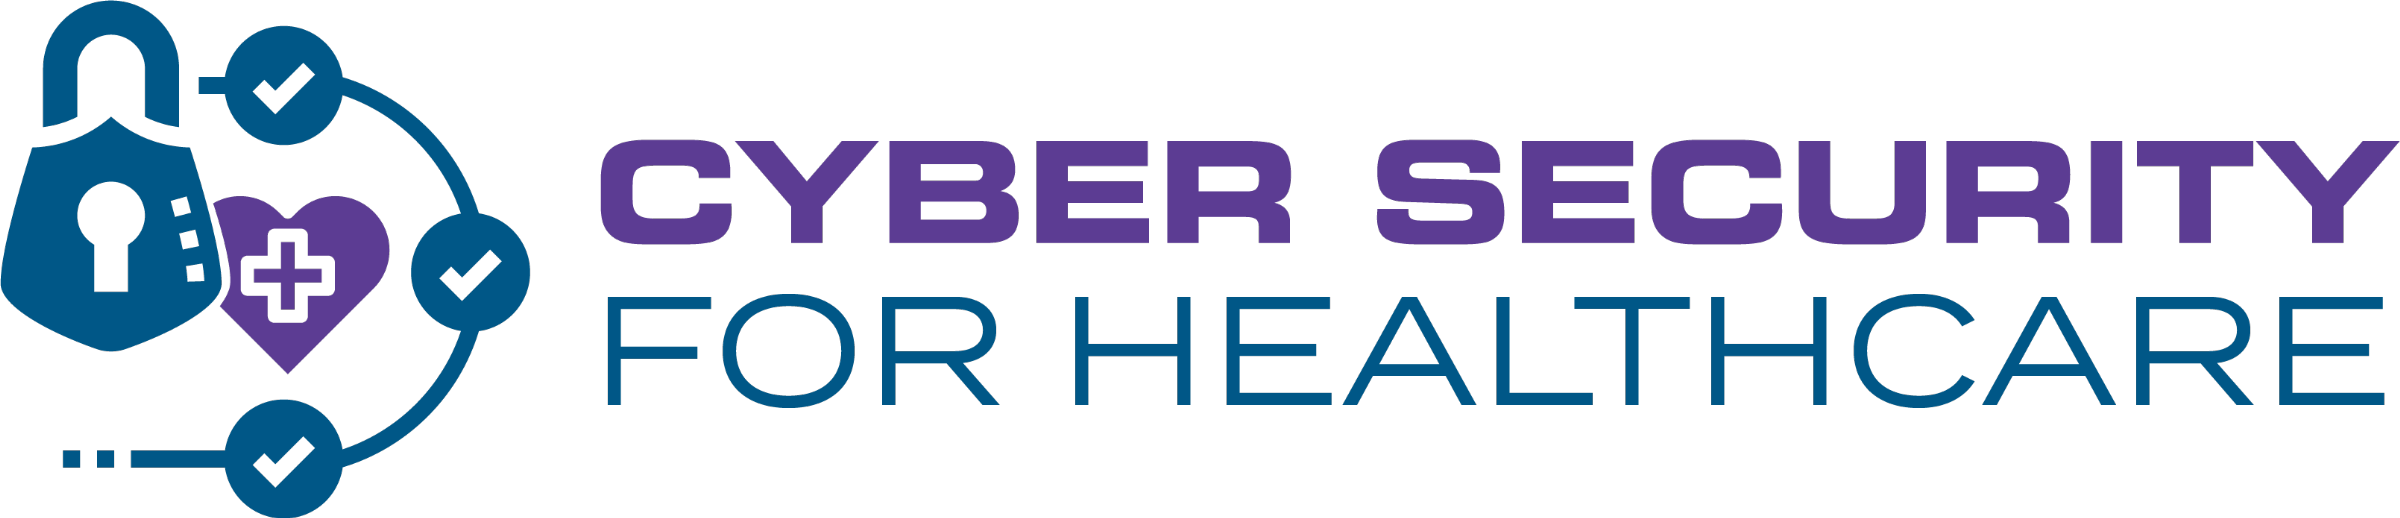 Cyber Security for Healthcare